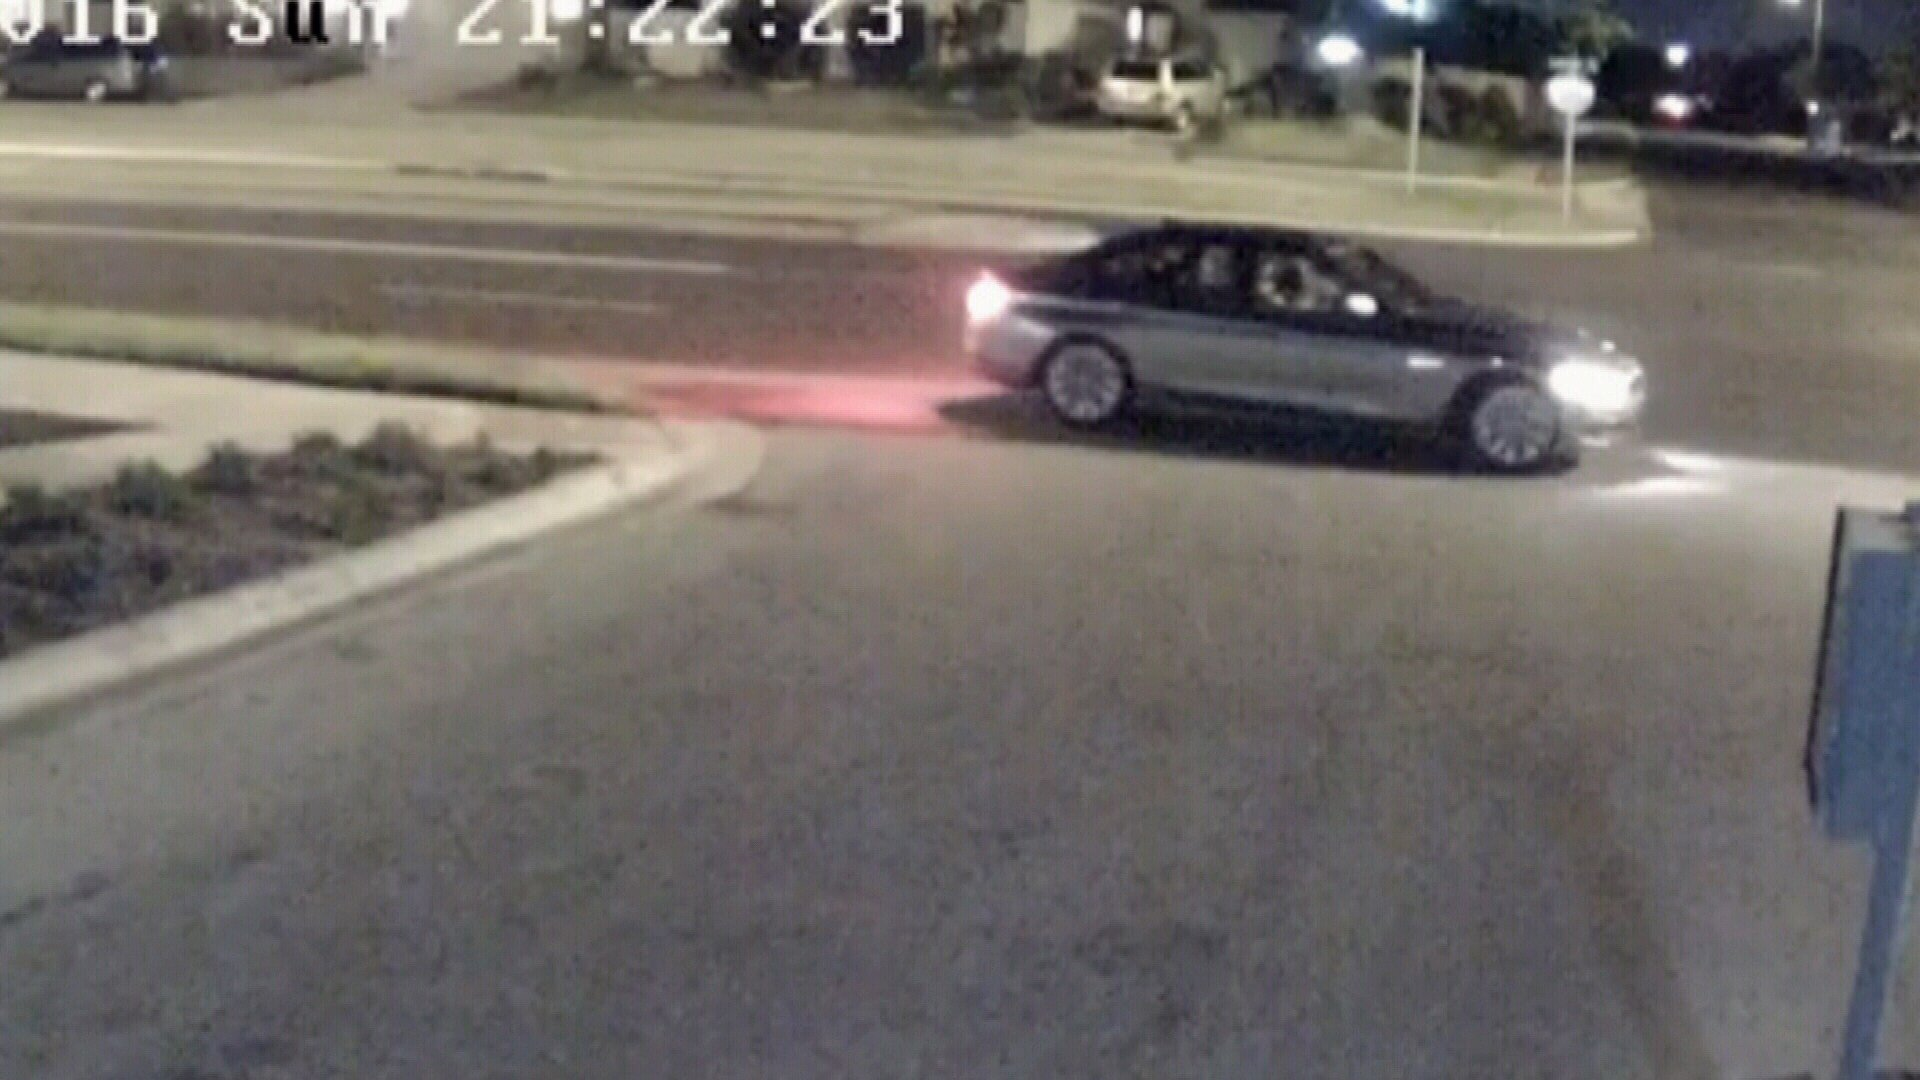 Bmw Of Corpus Christi Crime Of The Week Armed Robbery On City39s Southside Kristvcom